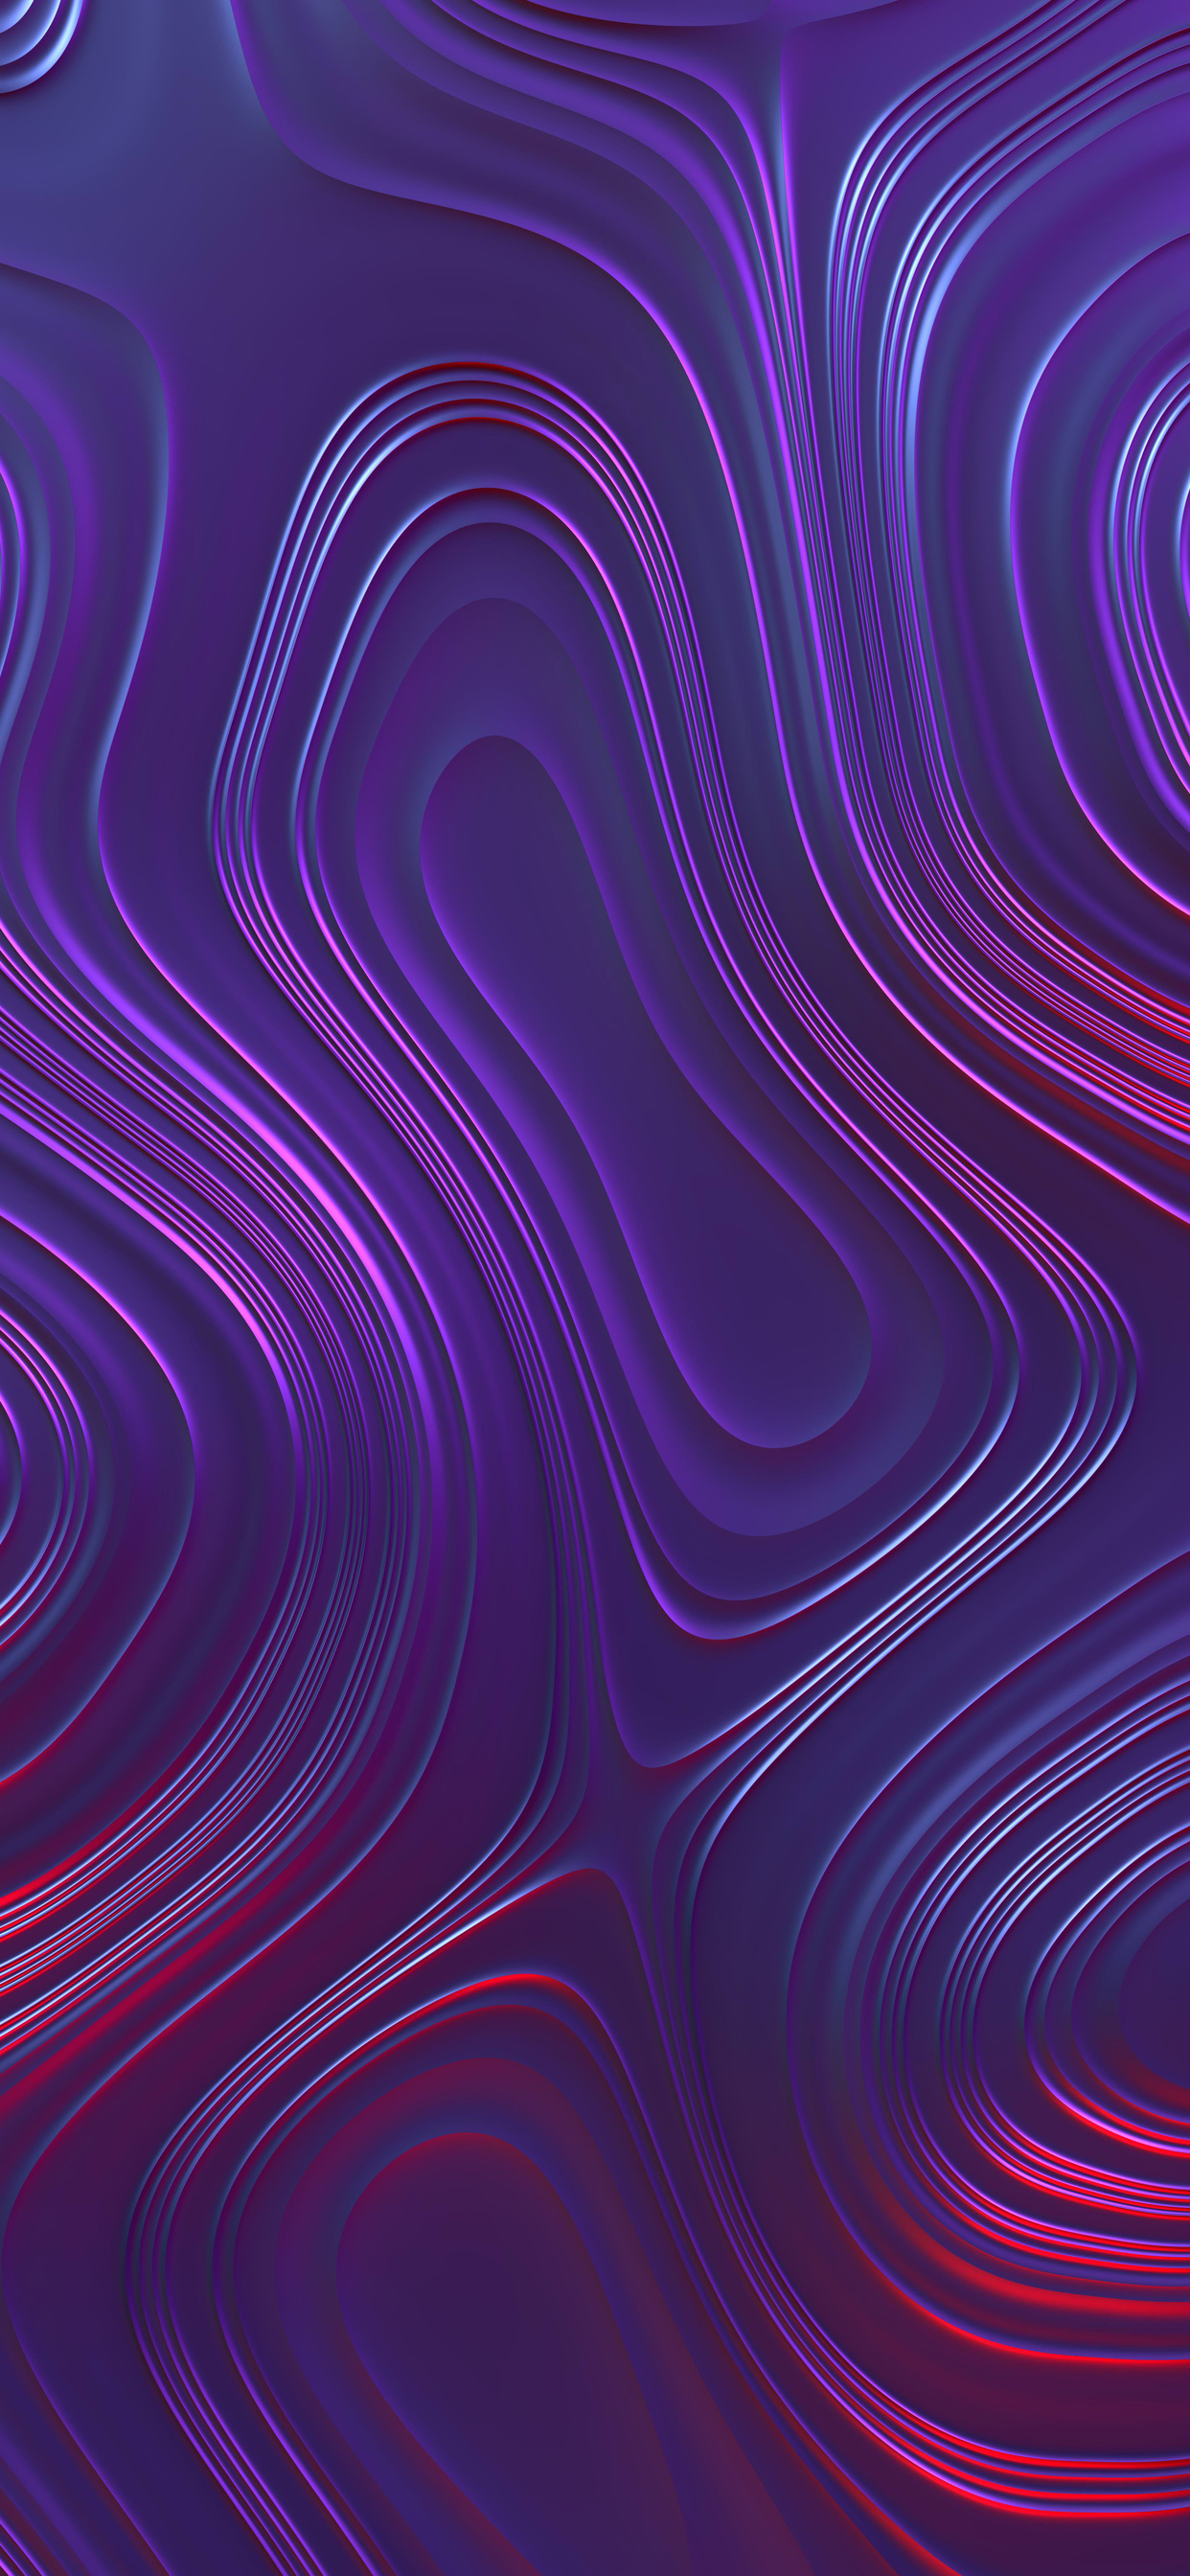 1242x2688 Abstract Ultra Hd 5k Iphone Xs Max Hd 4k Wallpapers